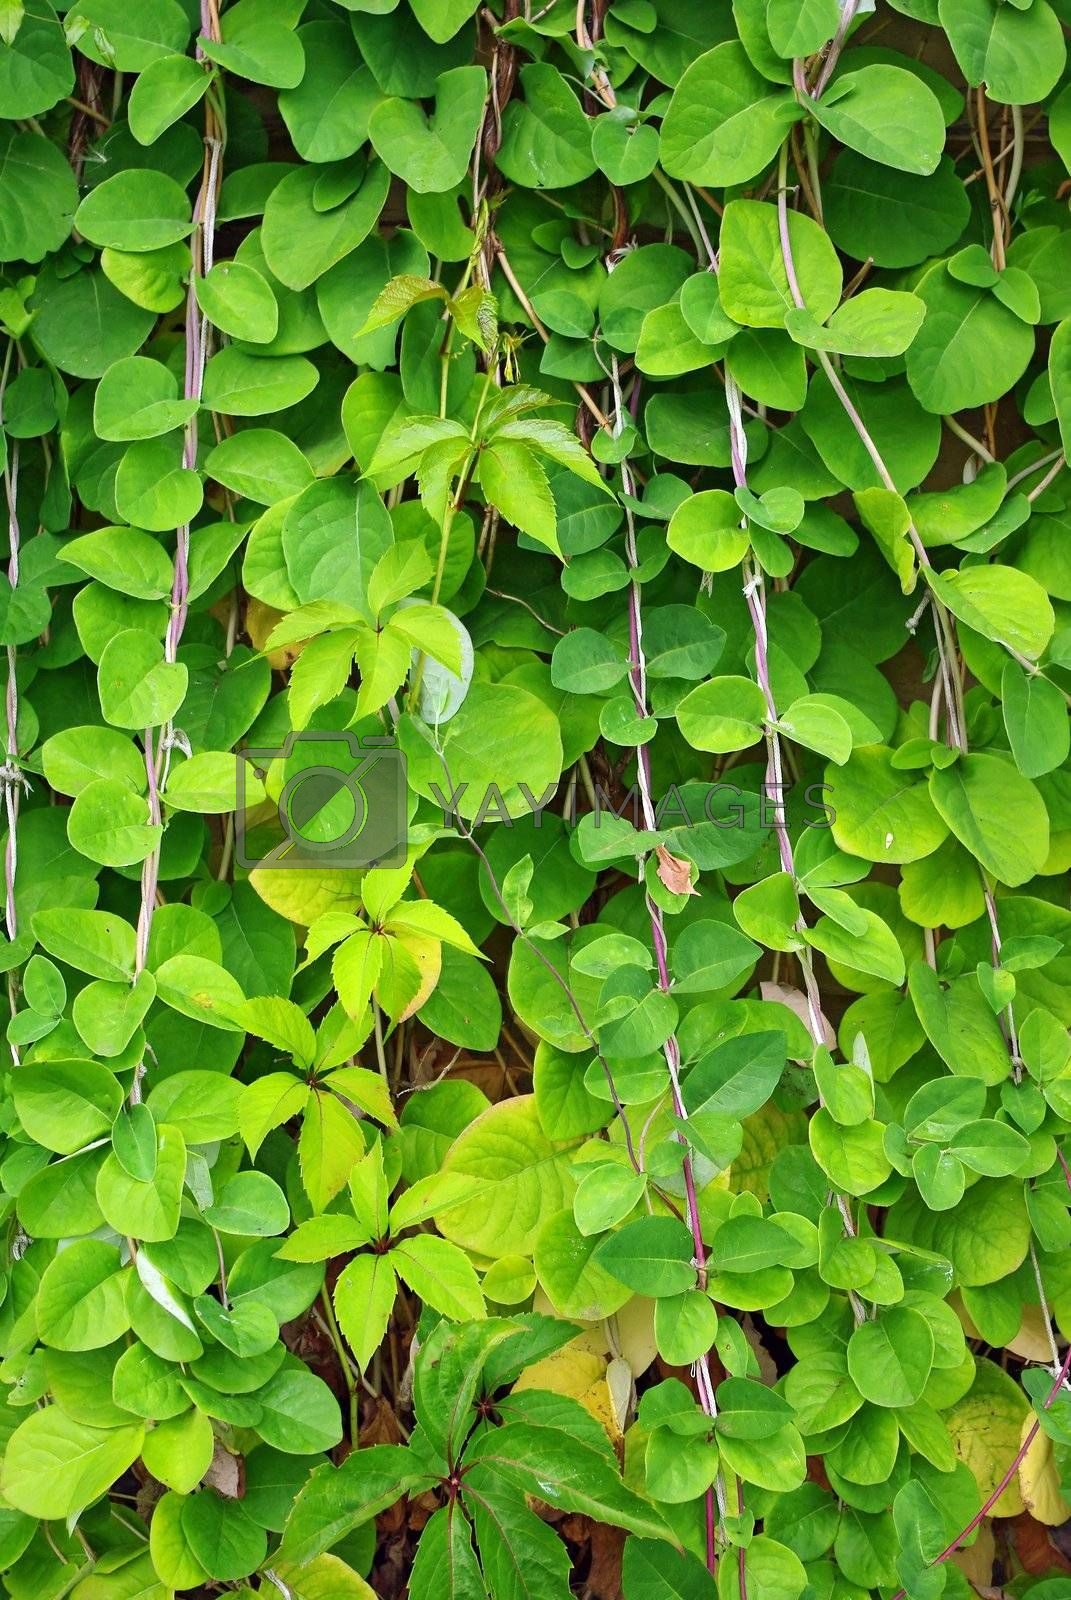 Royalty free image of The Green Creeper Plant on the wall by Vitamin